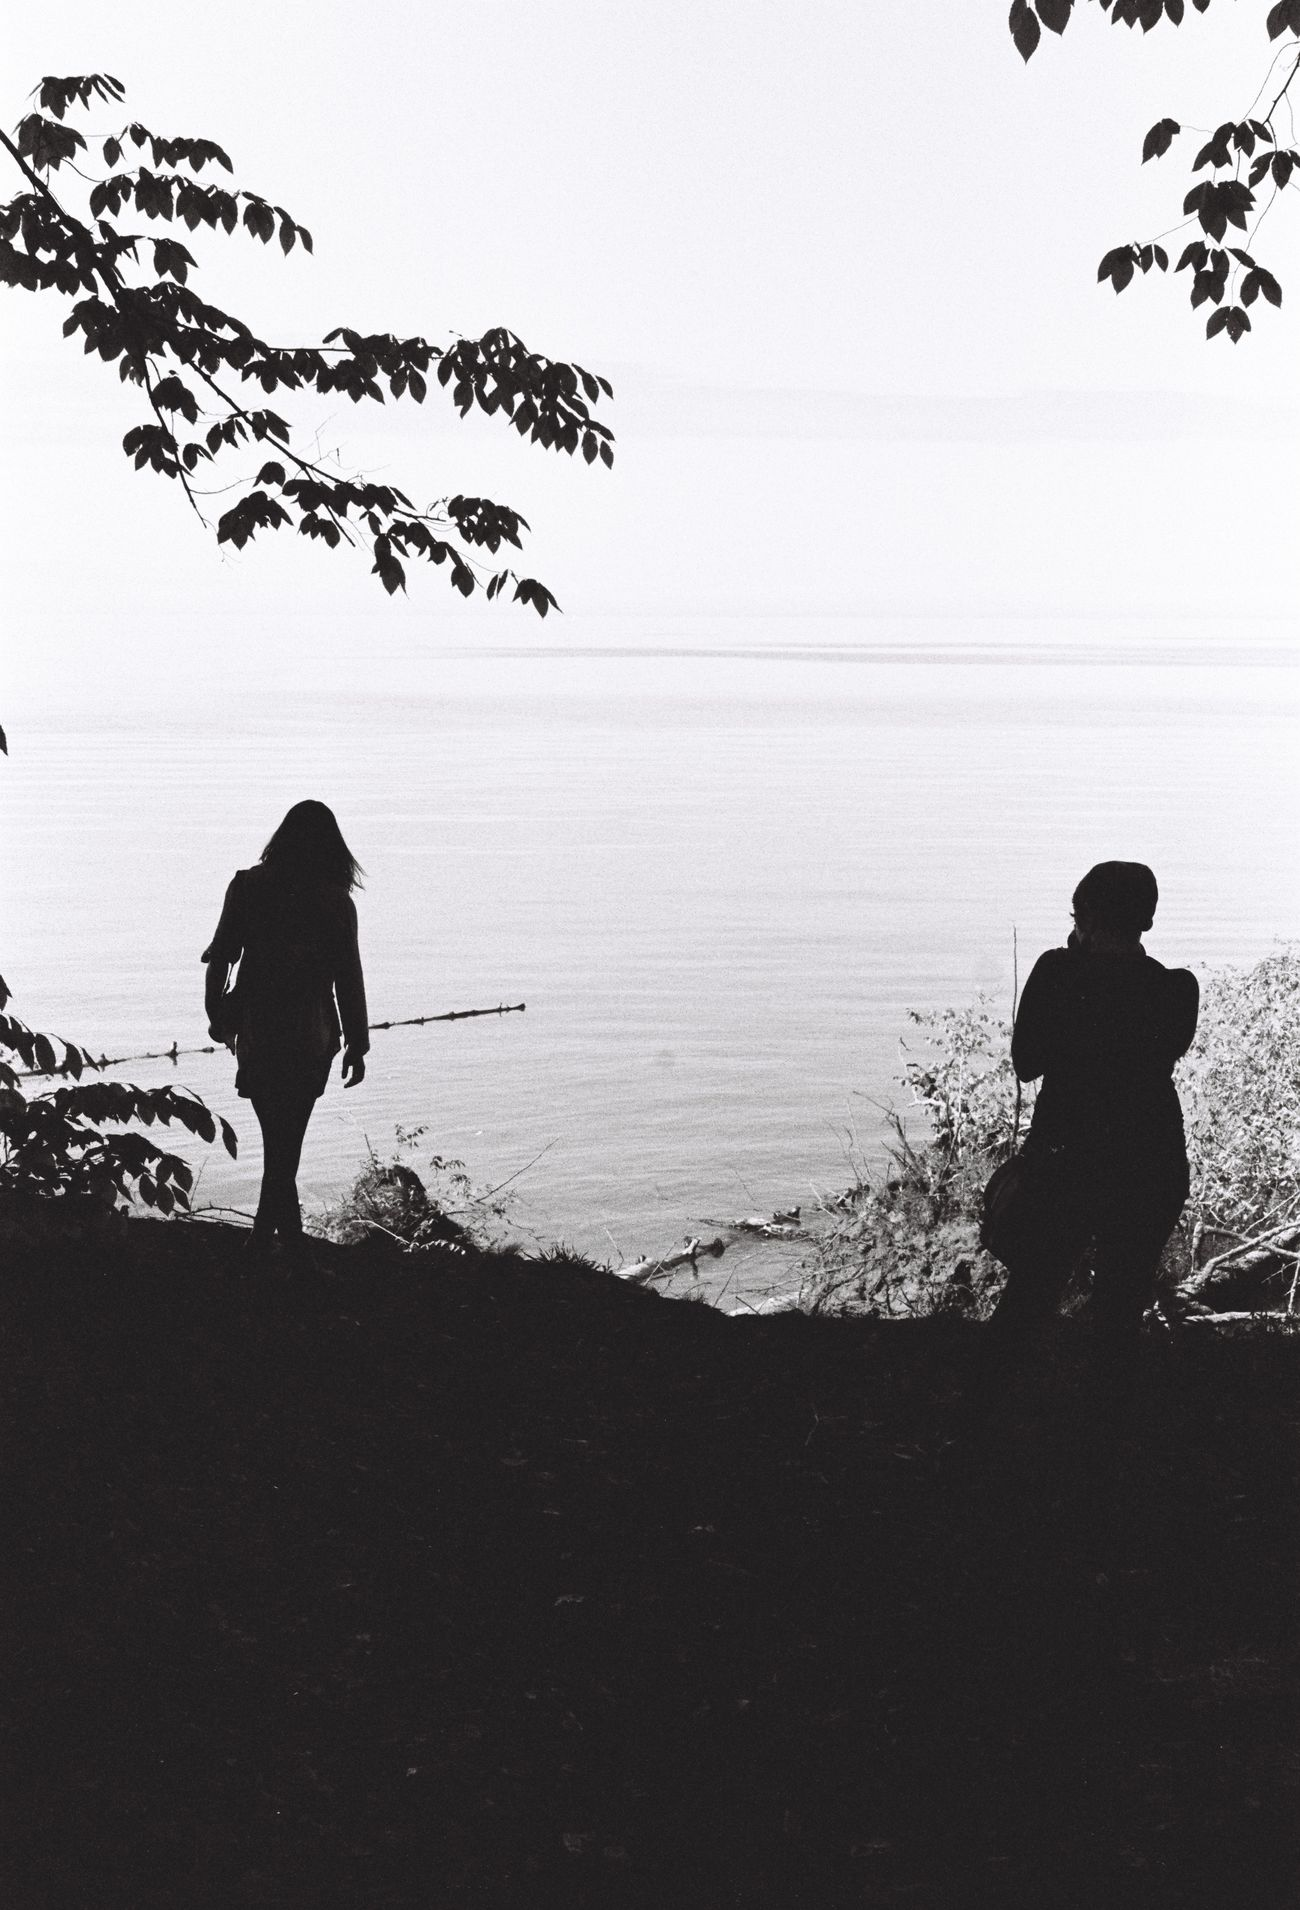 By the lakefront. Full Length Horizon Over Water Kodak Kodak Tri-X 400 Lake Ontario Lifestyles Nature New York State Outdoors Real People Rear View Rochester, NY Scenics Sea Silhouette Sky Standing Togetherness Tranquil Scene Tranquility Tree Two People Vacations Water